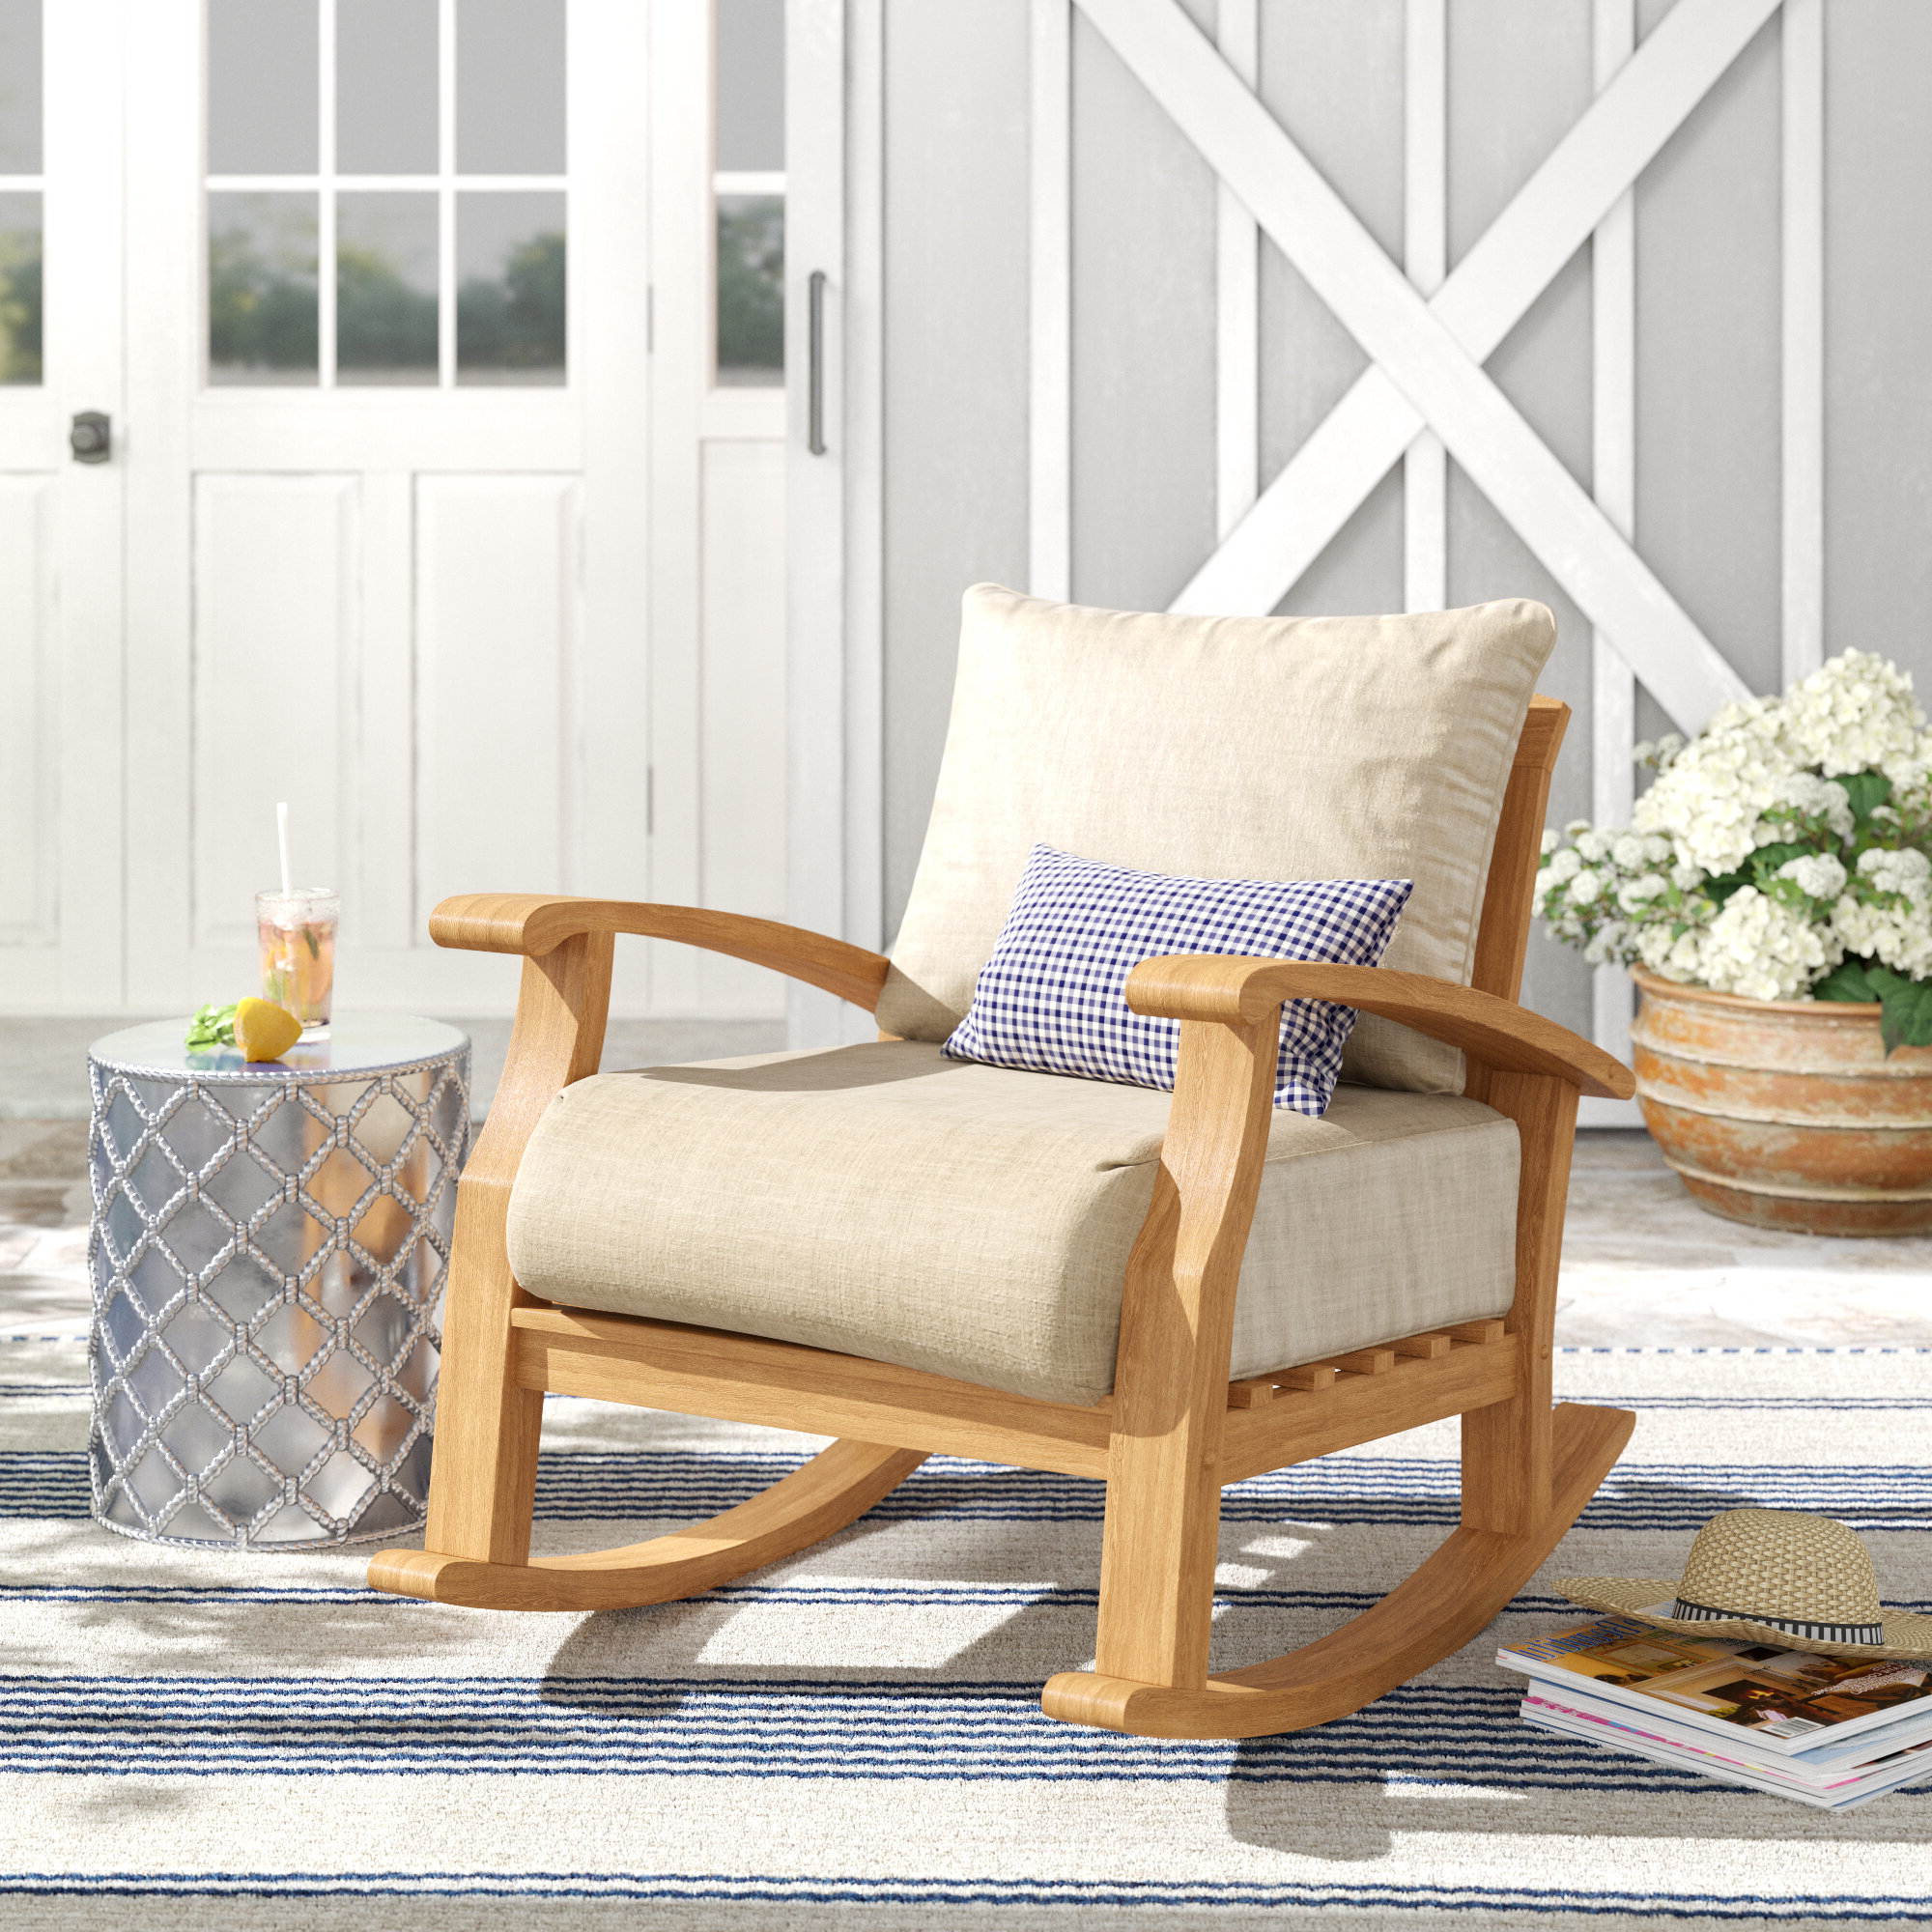 Preferred Summerton Teak Loveseats With Cushions With Summerton Teak Rocking Chair With Cushions (View 11 of 20)